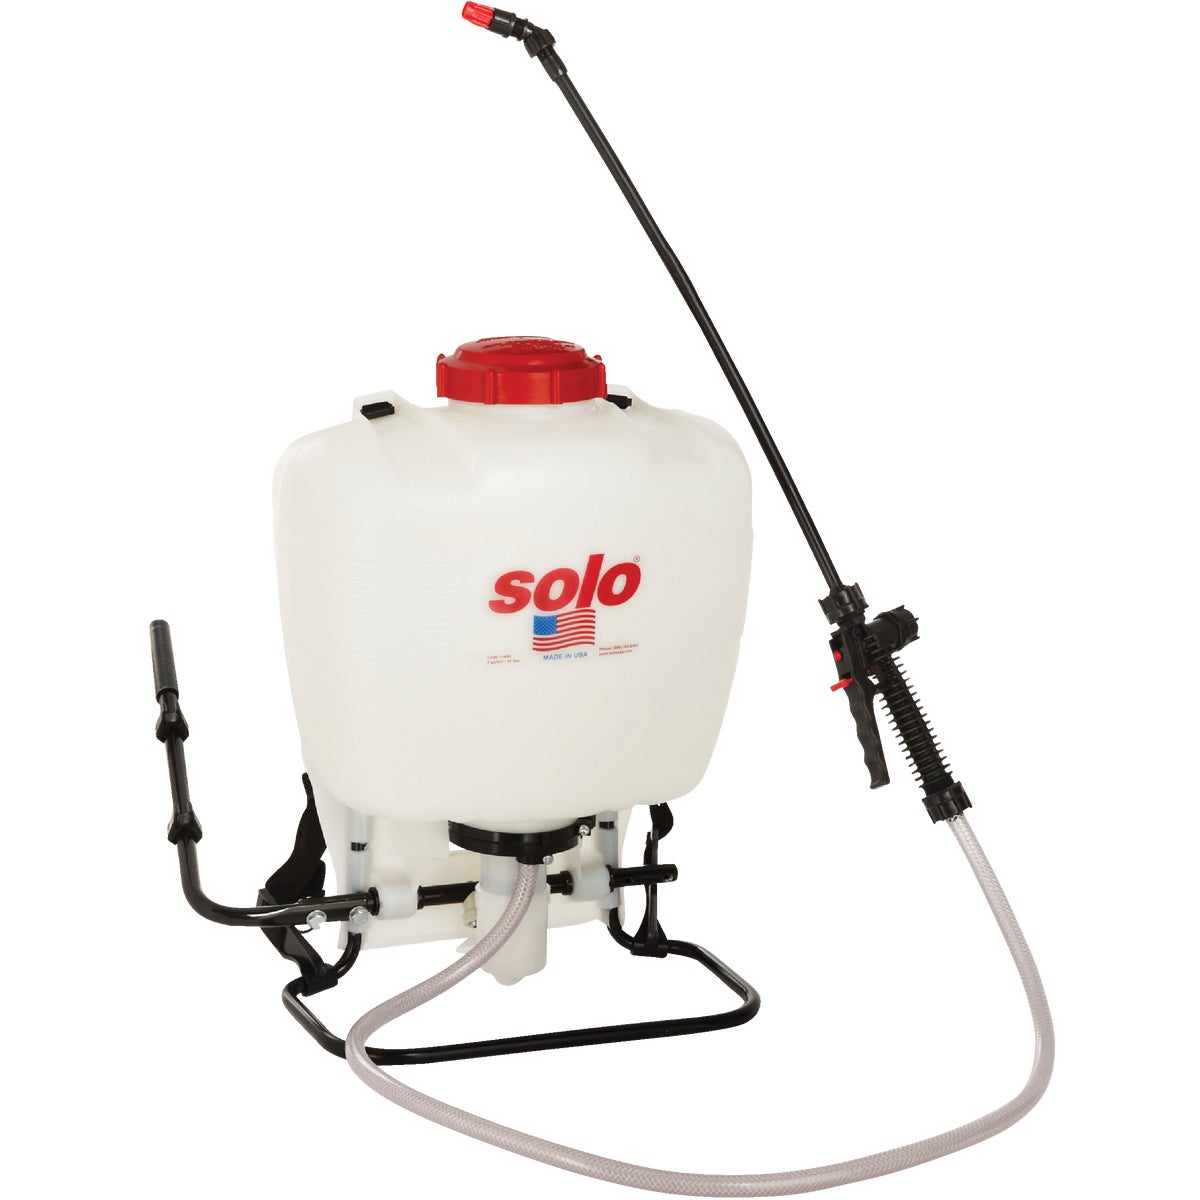 Solo Inc. 4GL BACKPACK SPRAYER 425